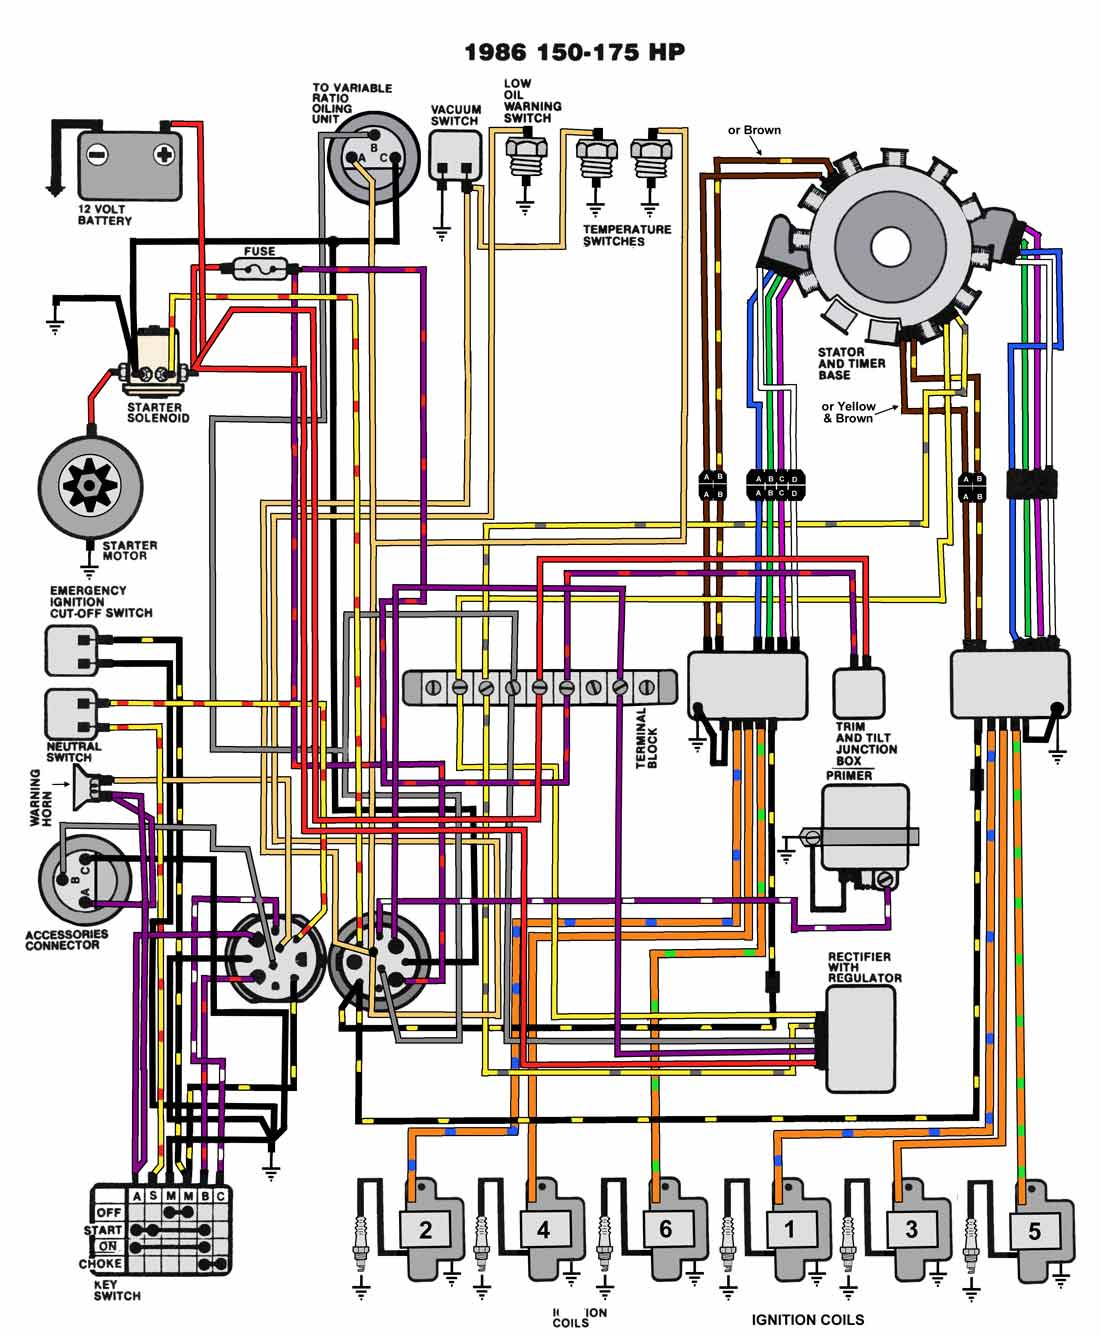 1986_150_175 mastertech marine evinrude johnson outboard wiring diagrams johnson red plug wiring diagram at pacquiaovsvargaslive.co